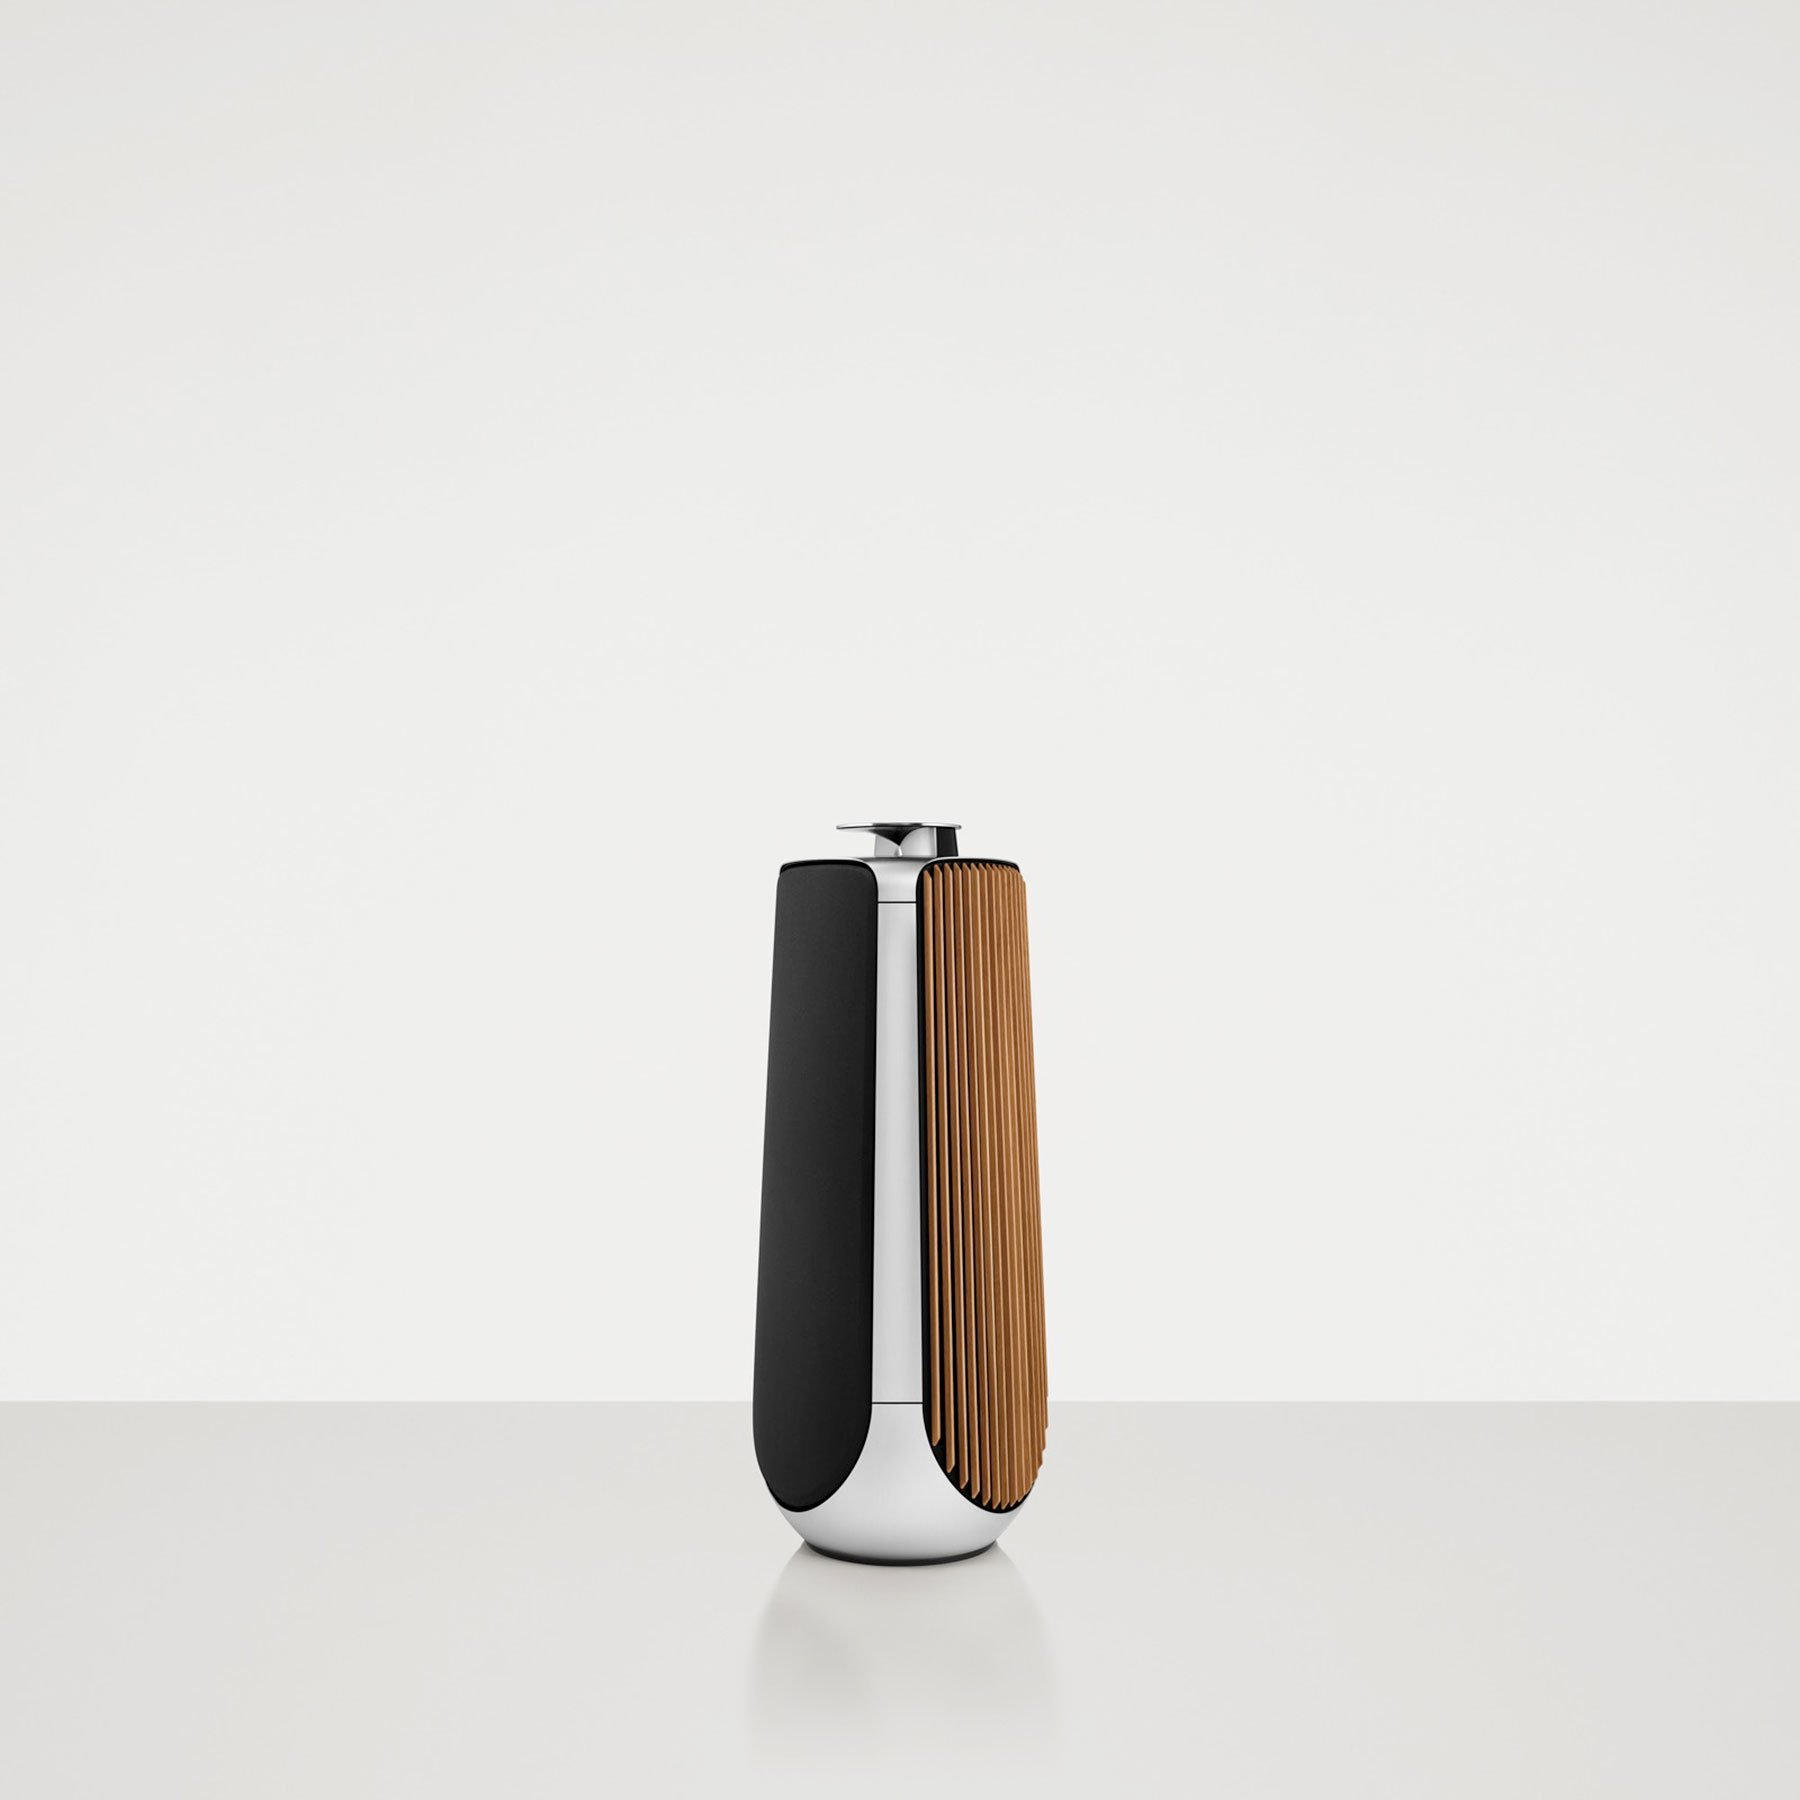 Bang amp olufsen table stand for beolab 7 4 - The High End Loudspeaker Delivers Excellent Performance With Its Seven Dedicated Amplifiers That Have A Combined Power Of 2 100 Watts With Three 4